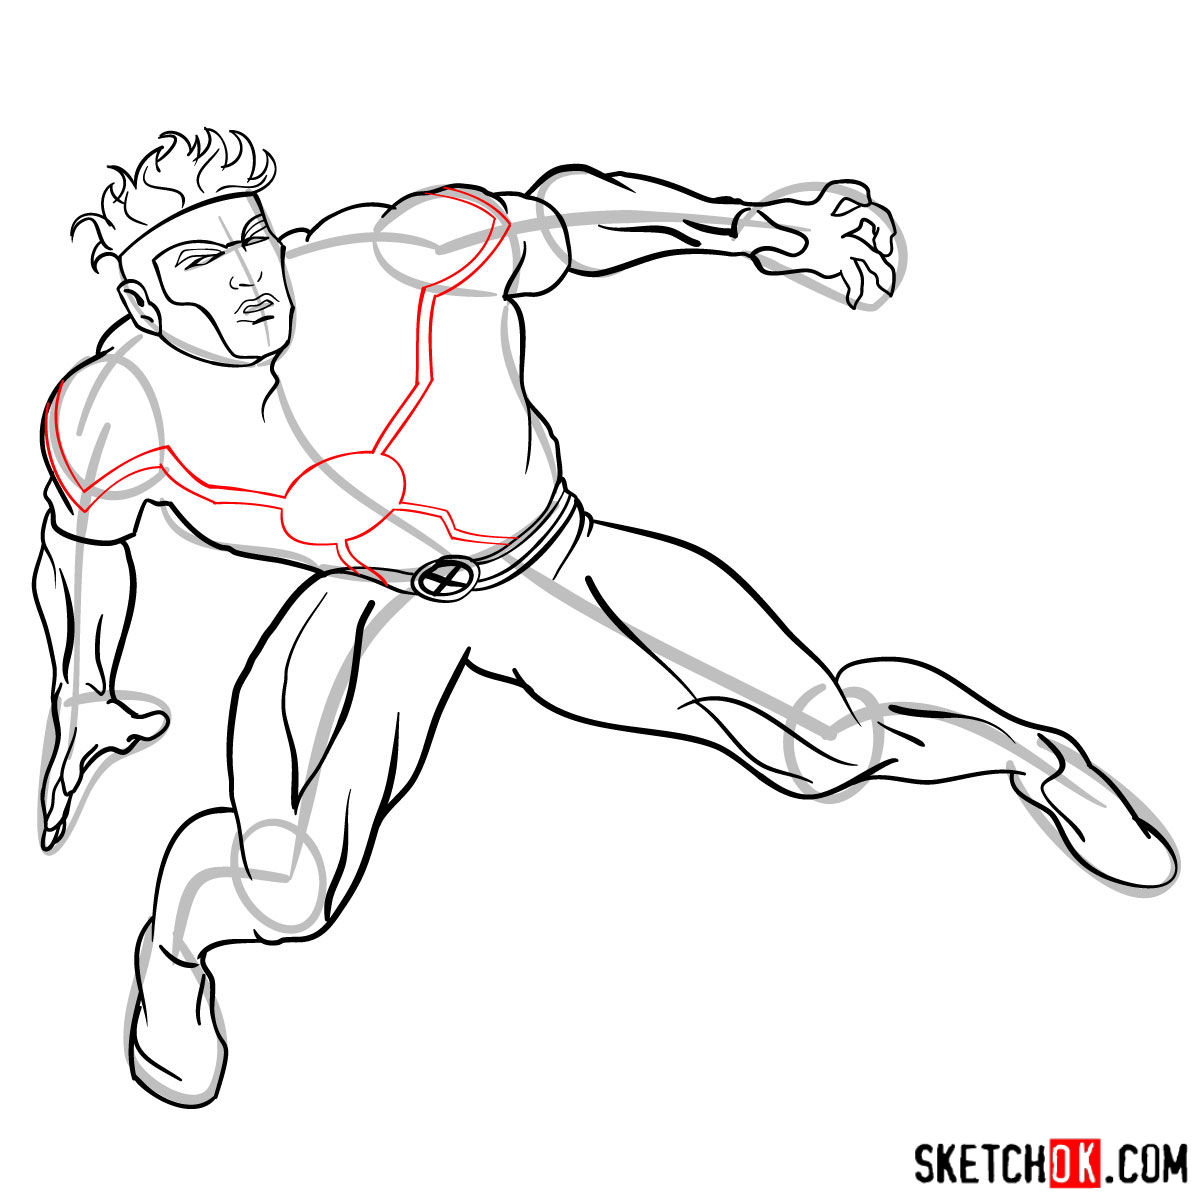 How to draw Havok from X-Men series - step by step tutorial - step 12